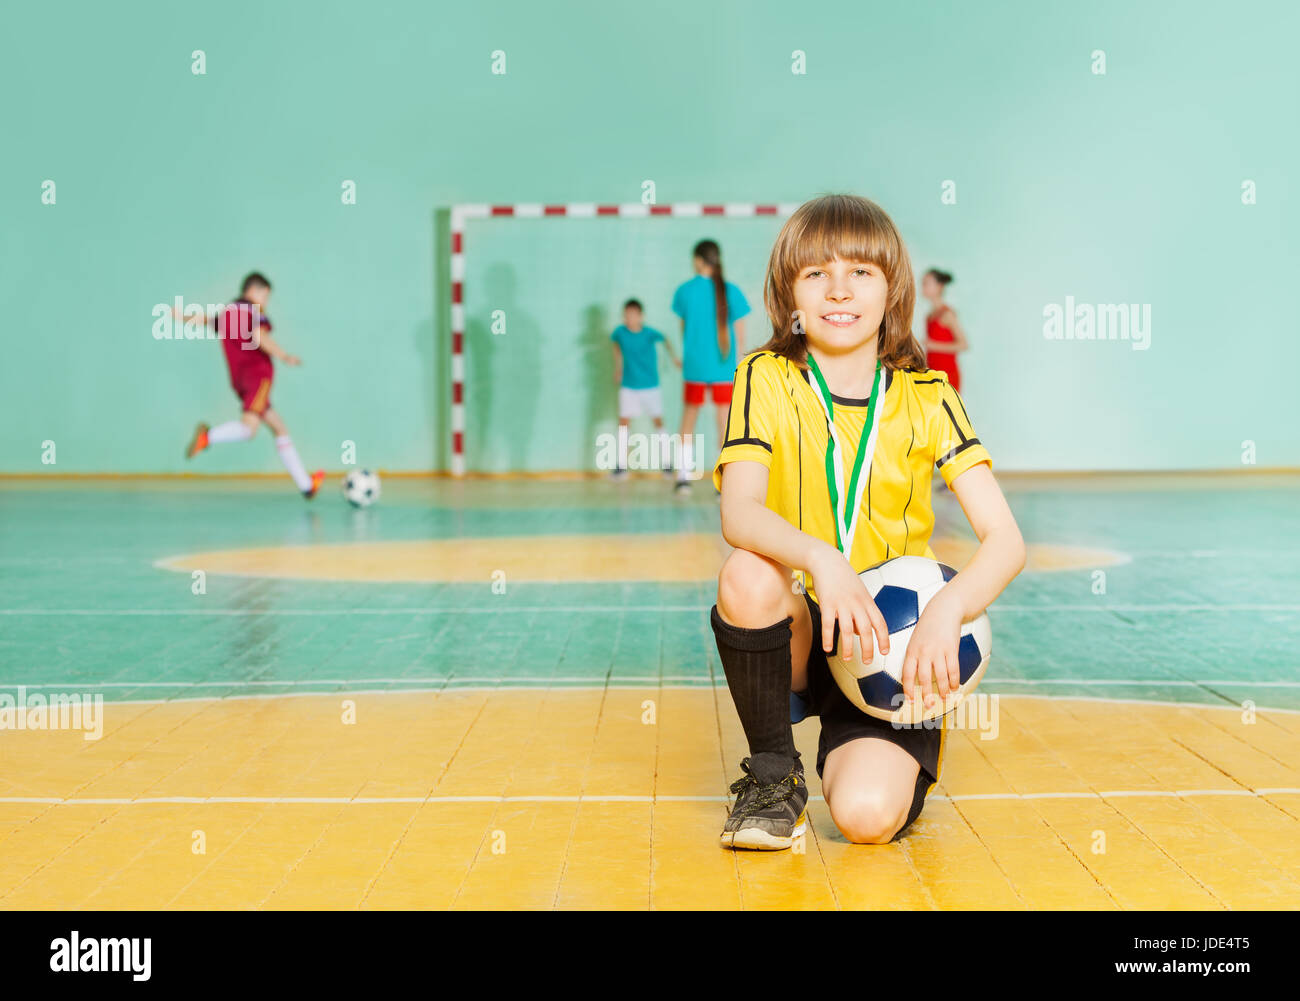 Portrait of smiling preteen boy, soccer team captain, standing on knee in futsal with ball - Stock Image